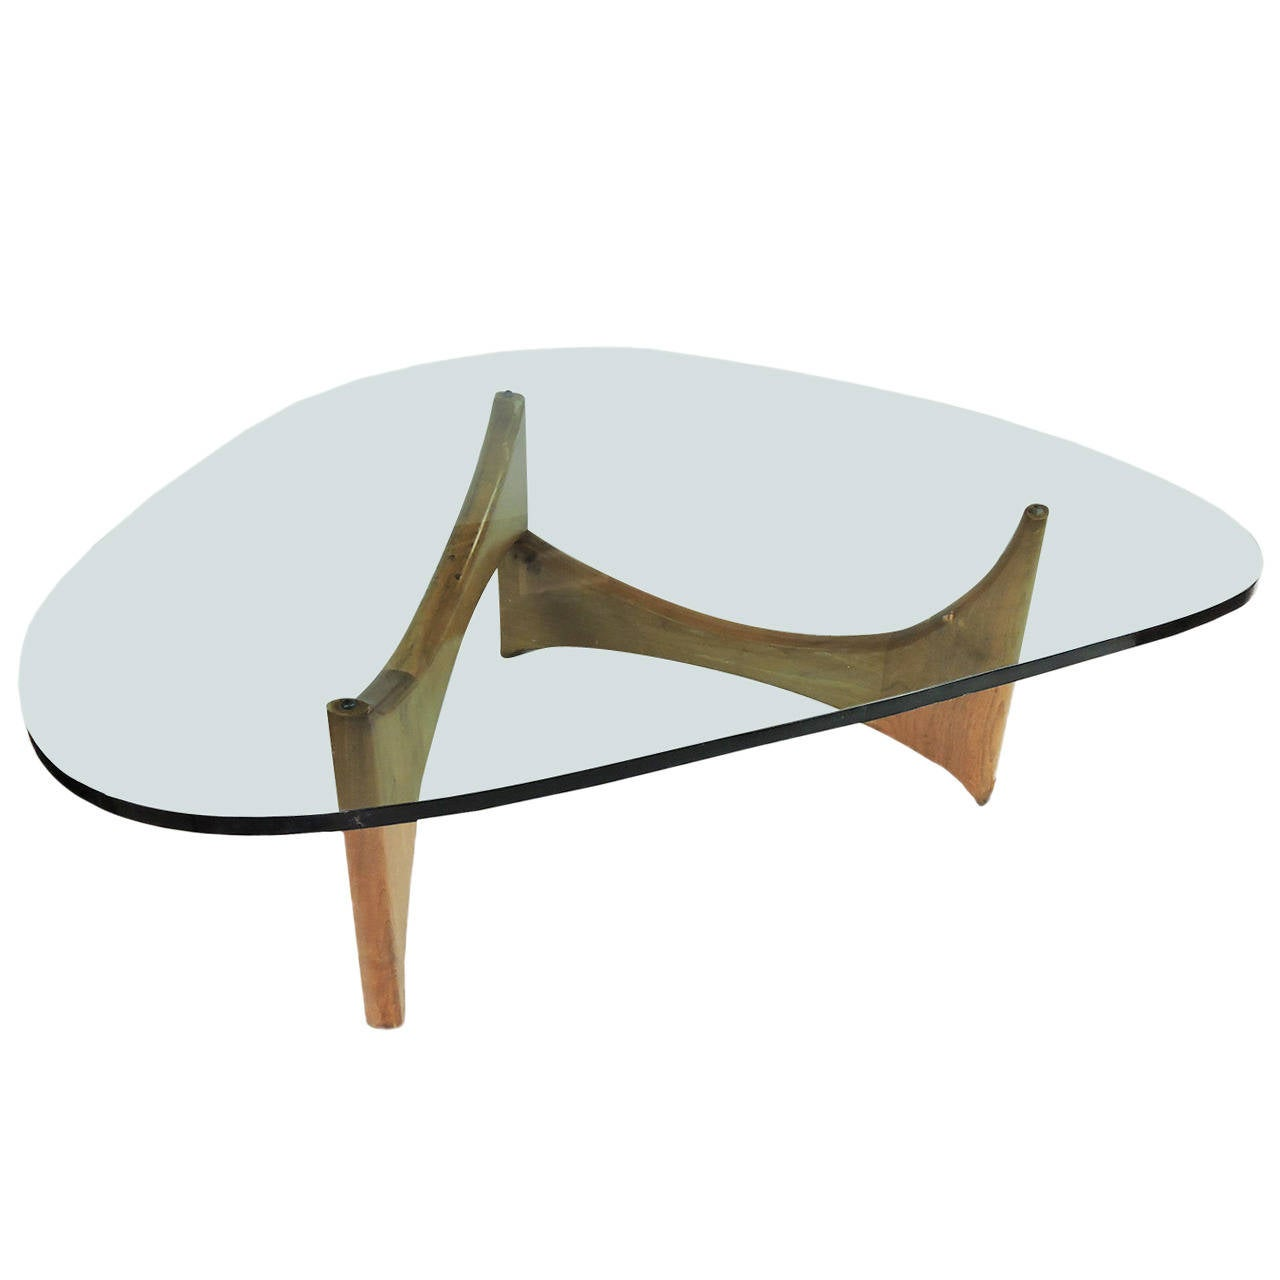 Mid century modern glass and wood coffee table at 1stdibs for Mid century modern coffee table